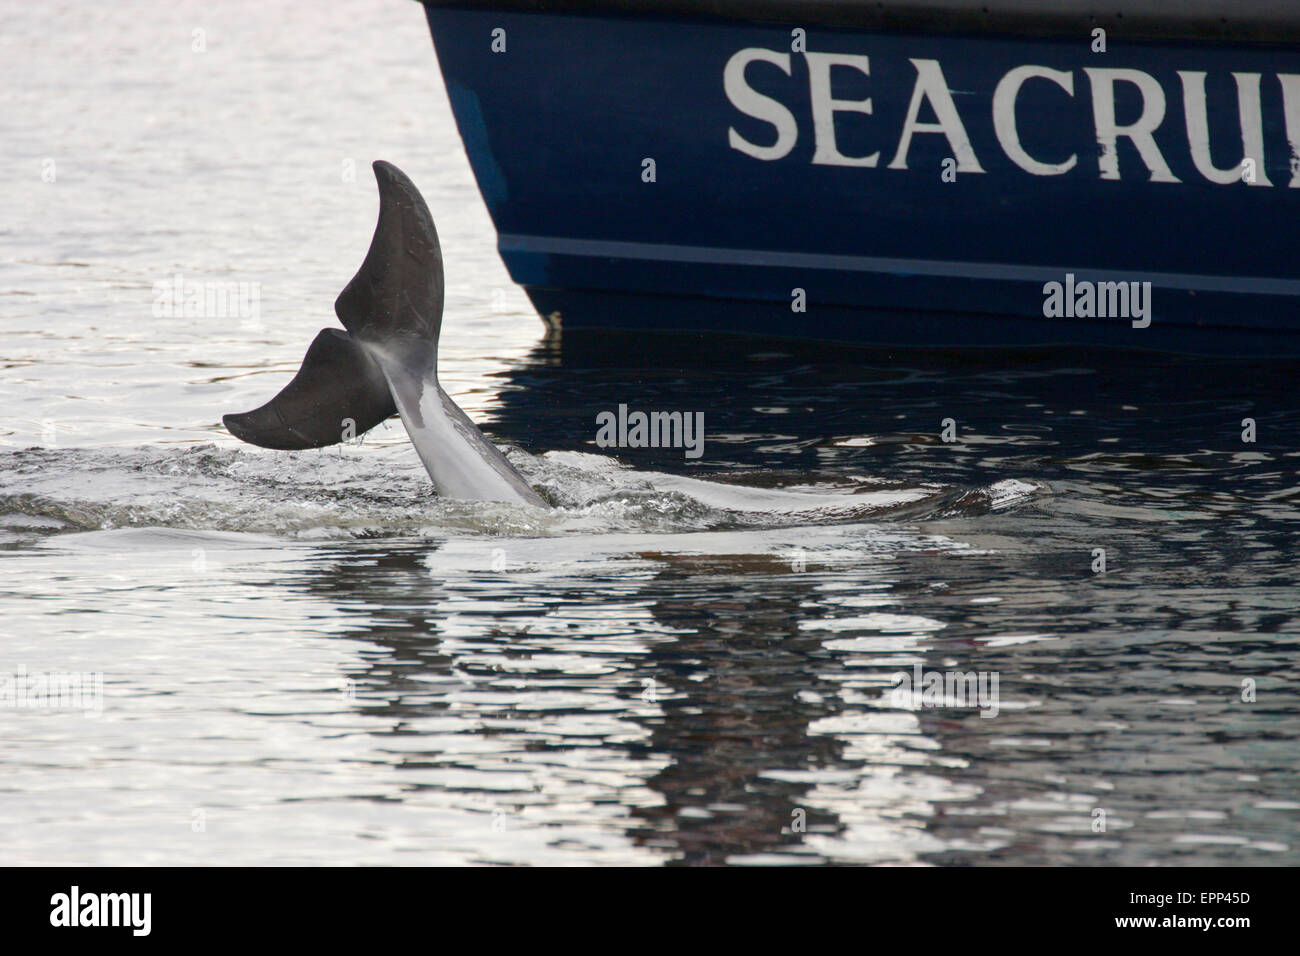 Bottlenose dolphin (Tursiops truncatus) diving alongside a dolphin watching boat, Moray Firth, Scotland, UK - Stock Image